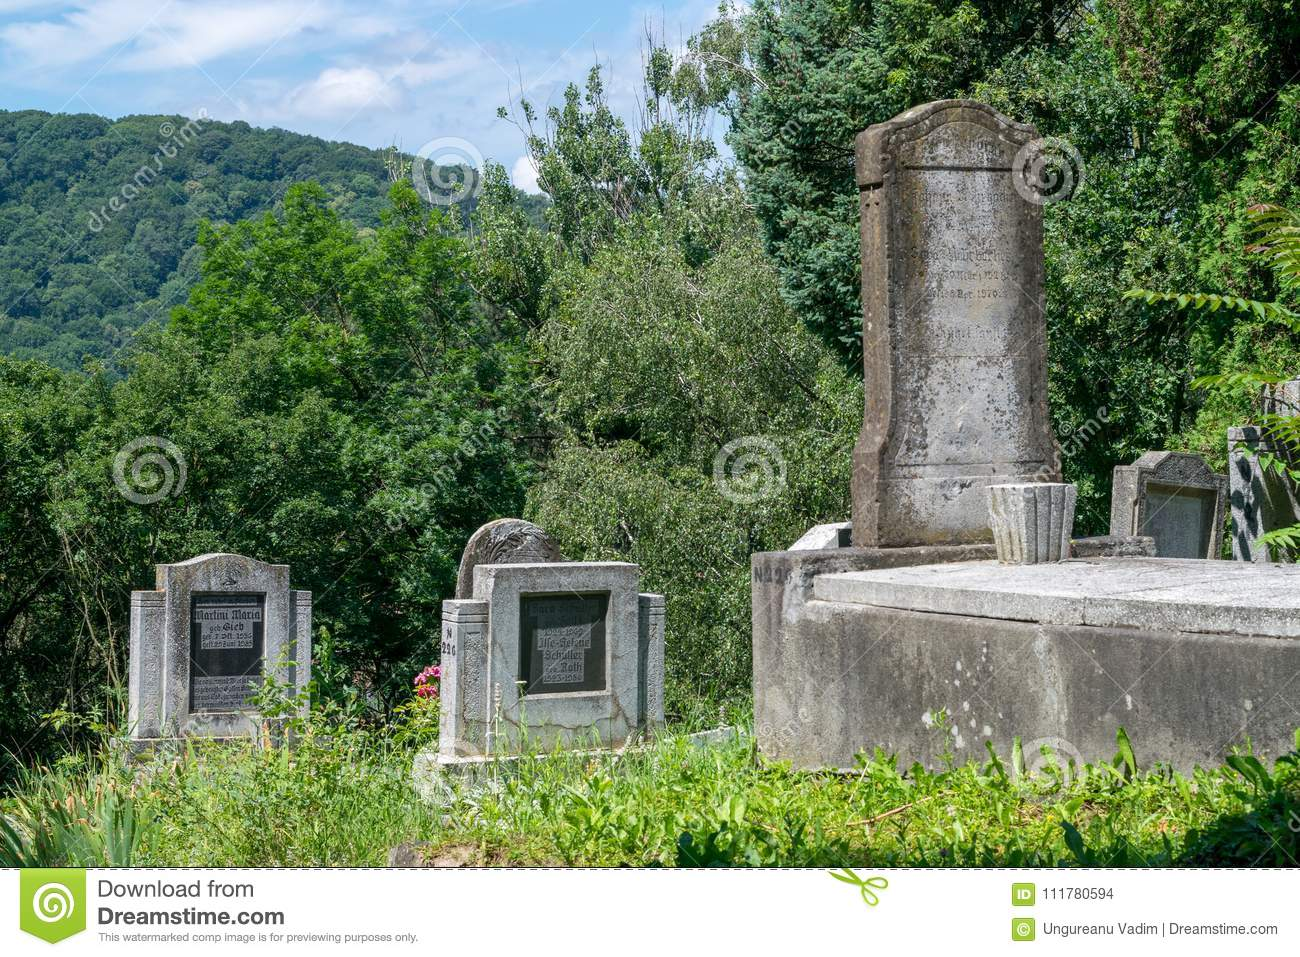 SIGHISOARA, ROMANIA - 1 JULY 2016: Saxon cemetery, located next to the Church on the Hill in Sighisoara, Romania